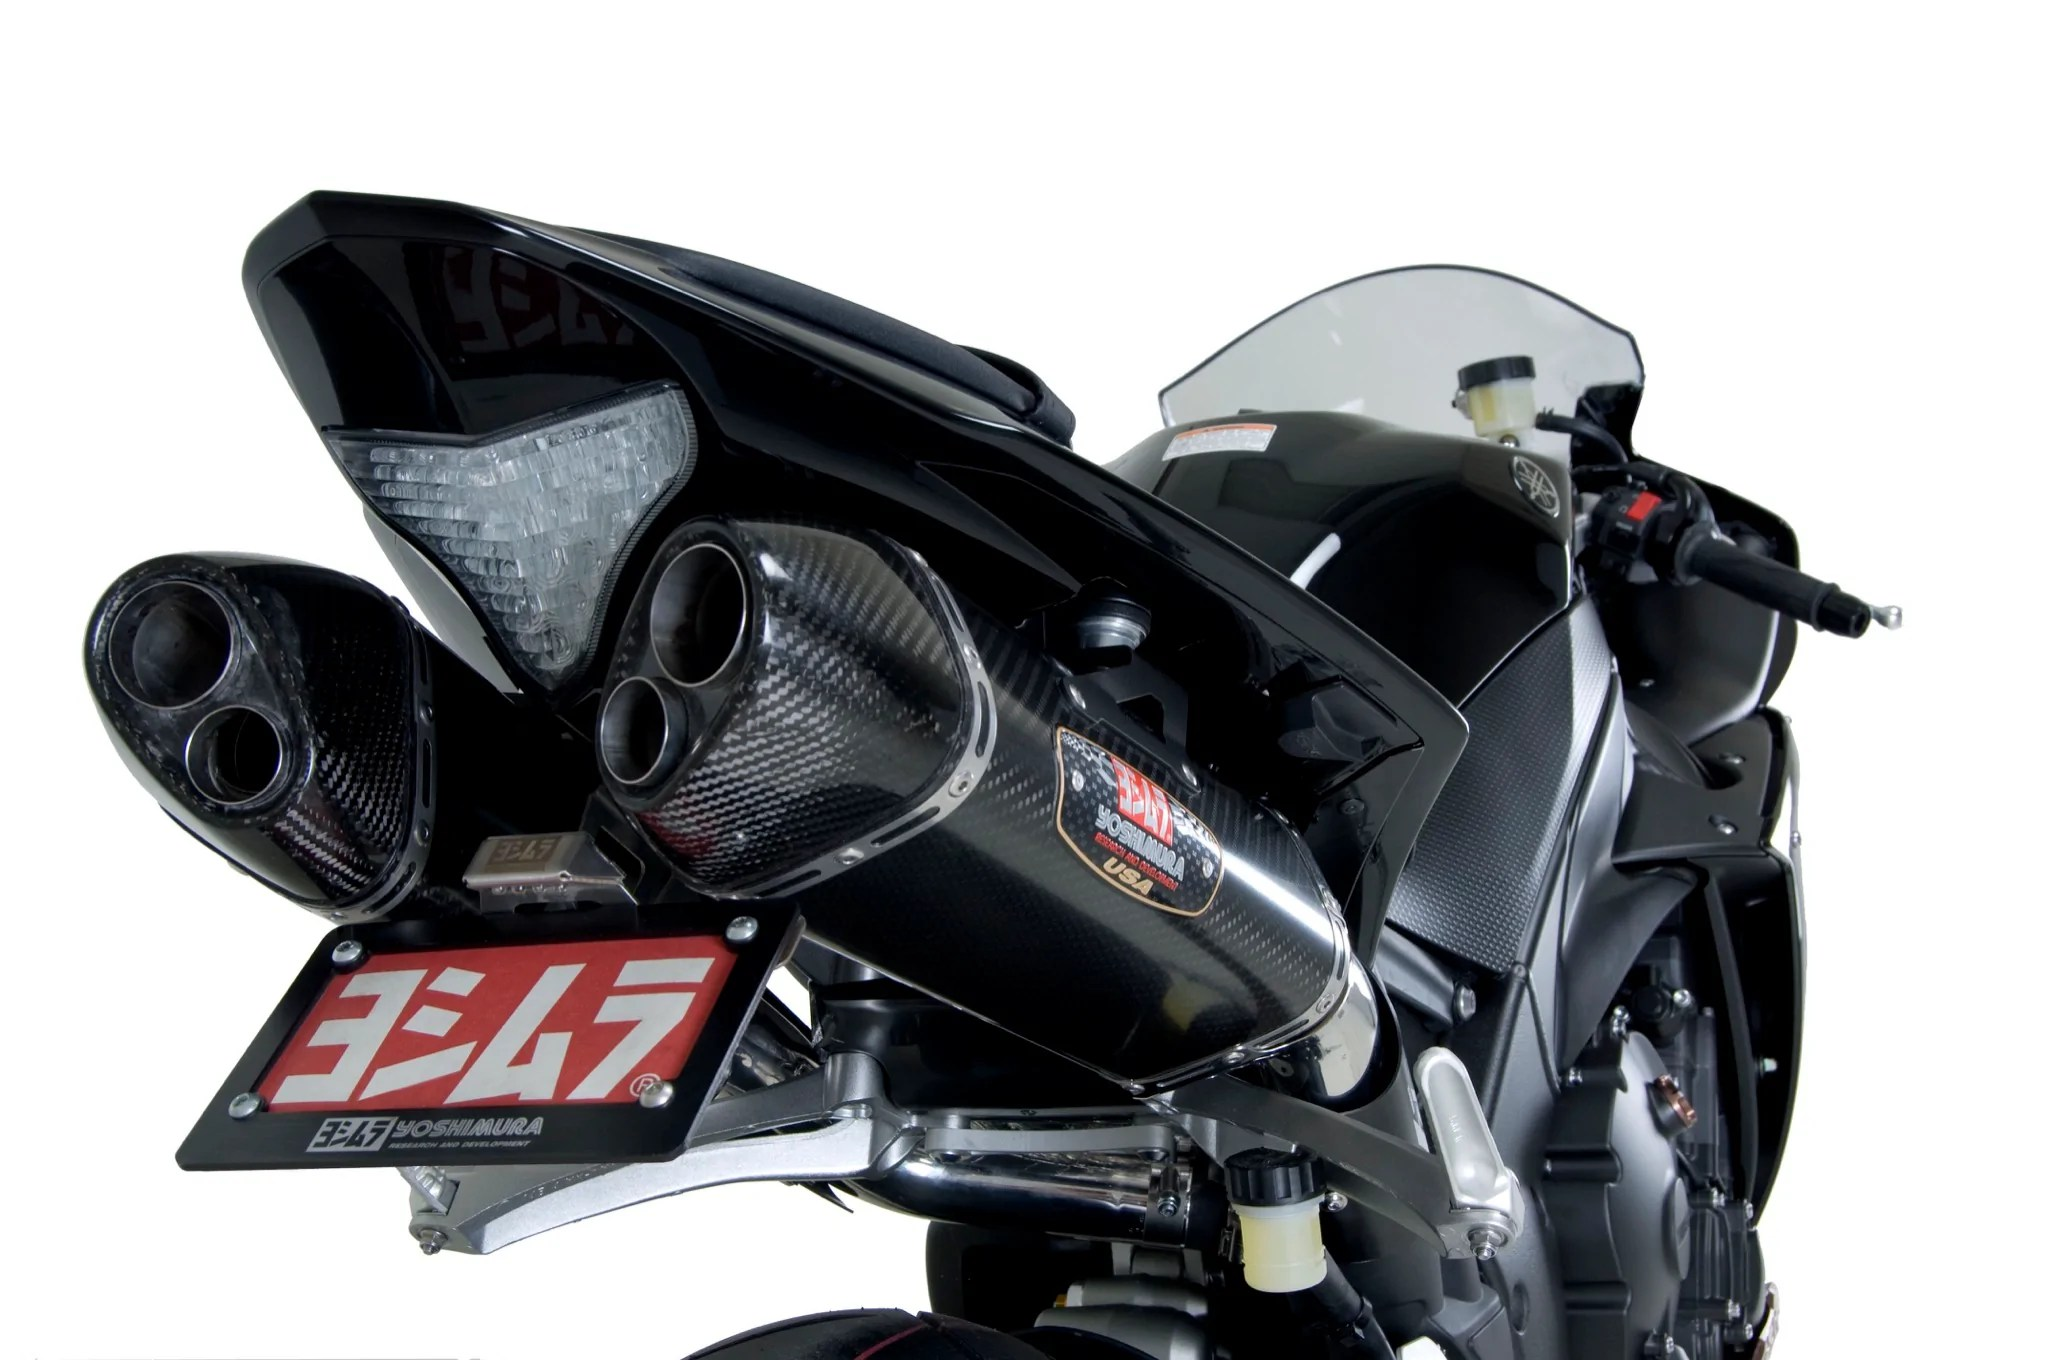 yzf r1 09 14 trc d stainless slip on exhaust w carbon fiber mufflers